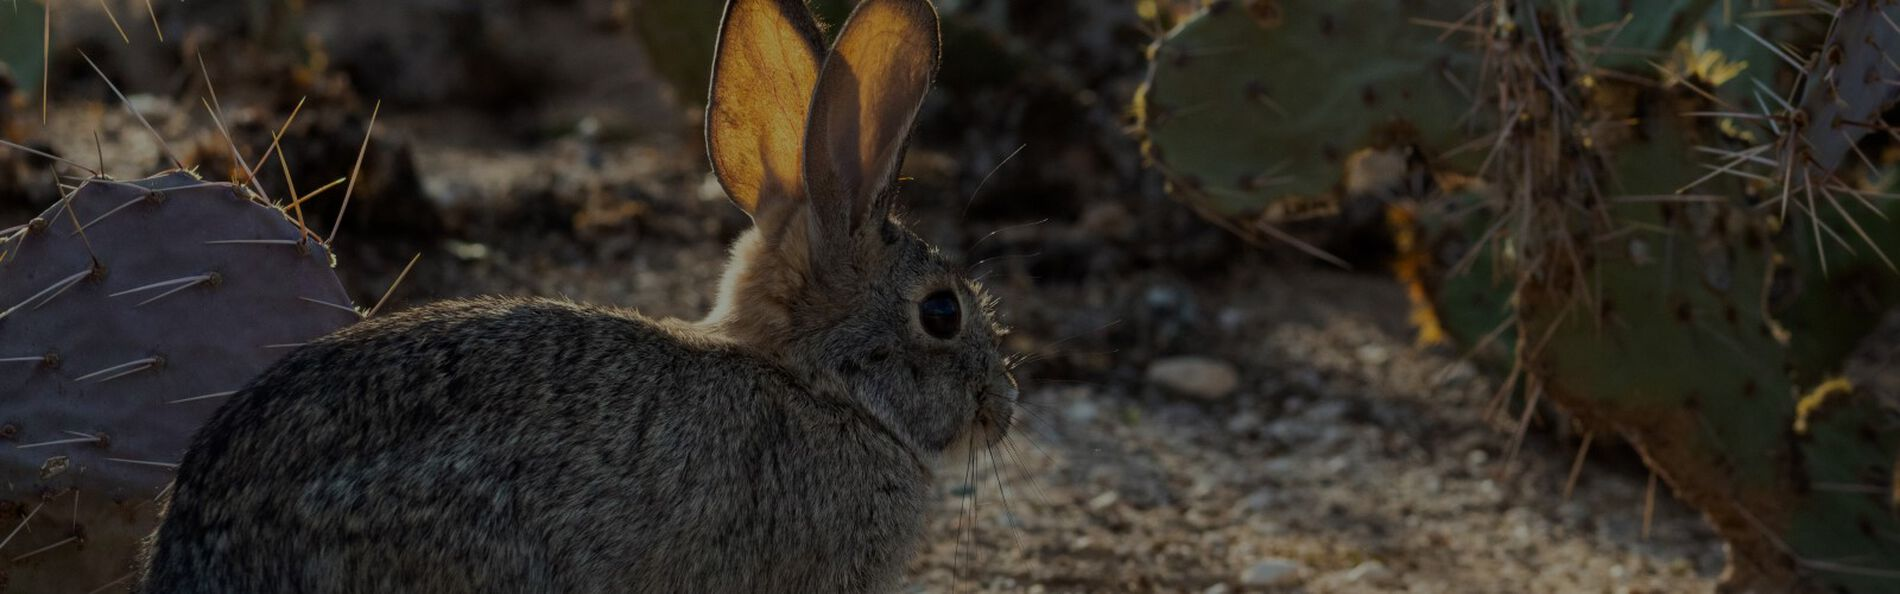 Cottontail standing infront of cactus